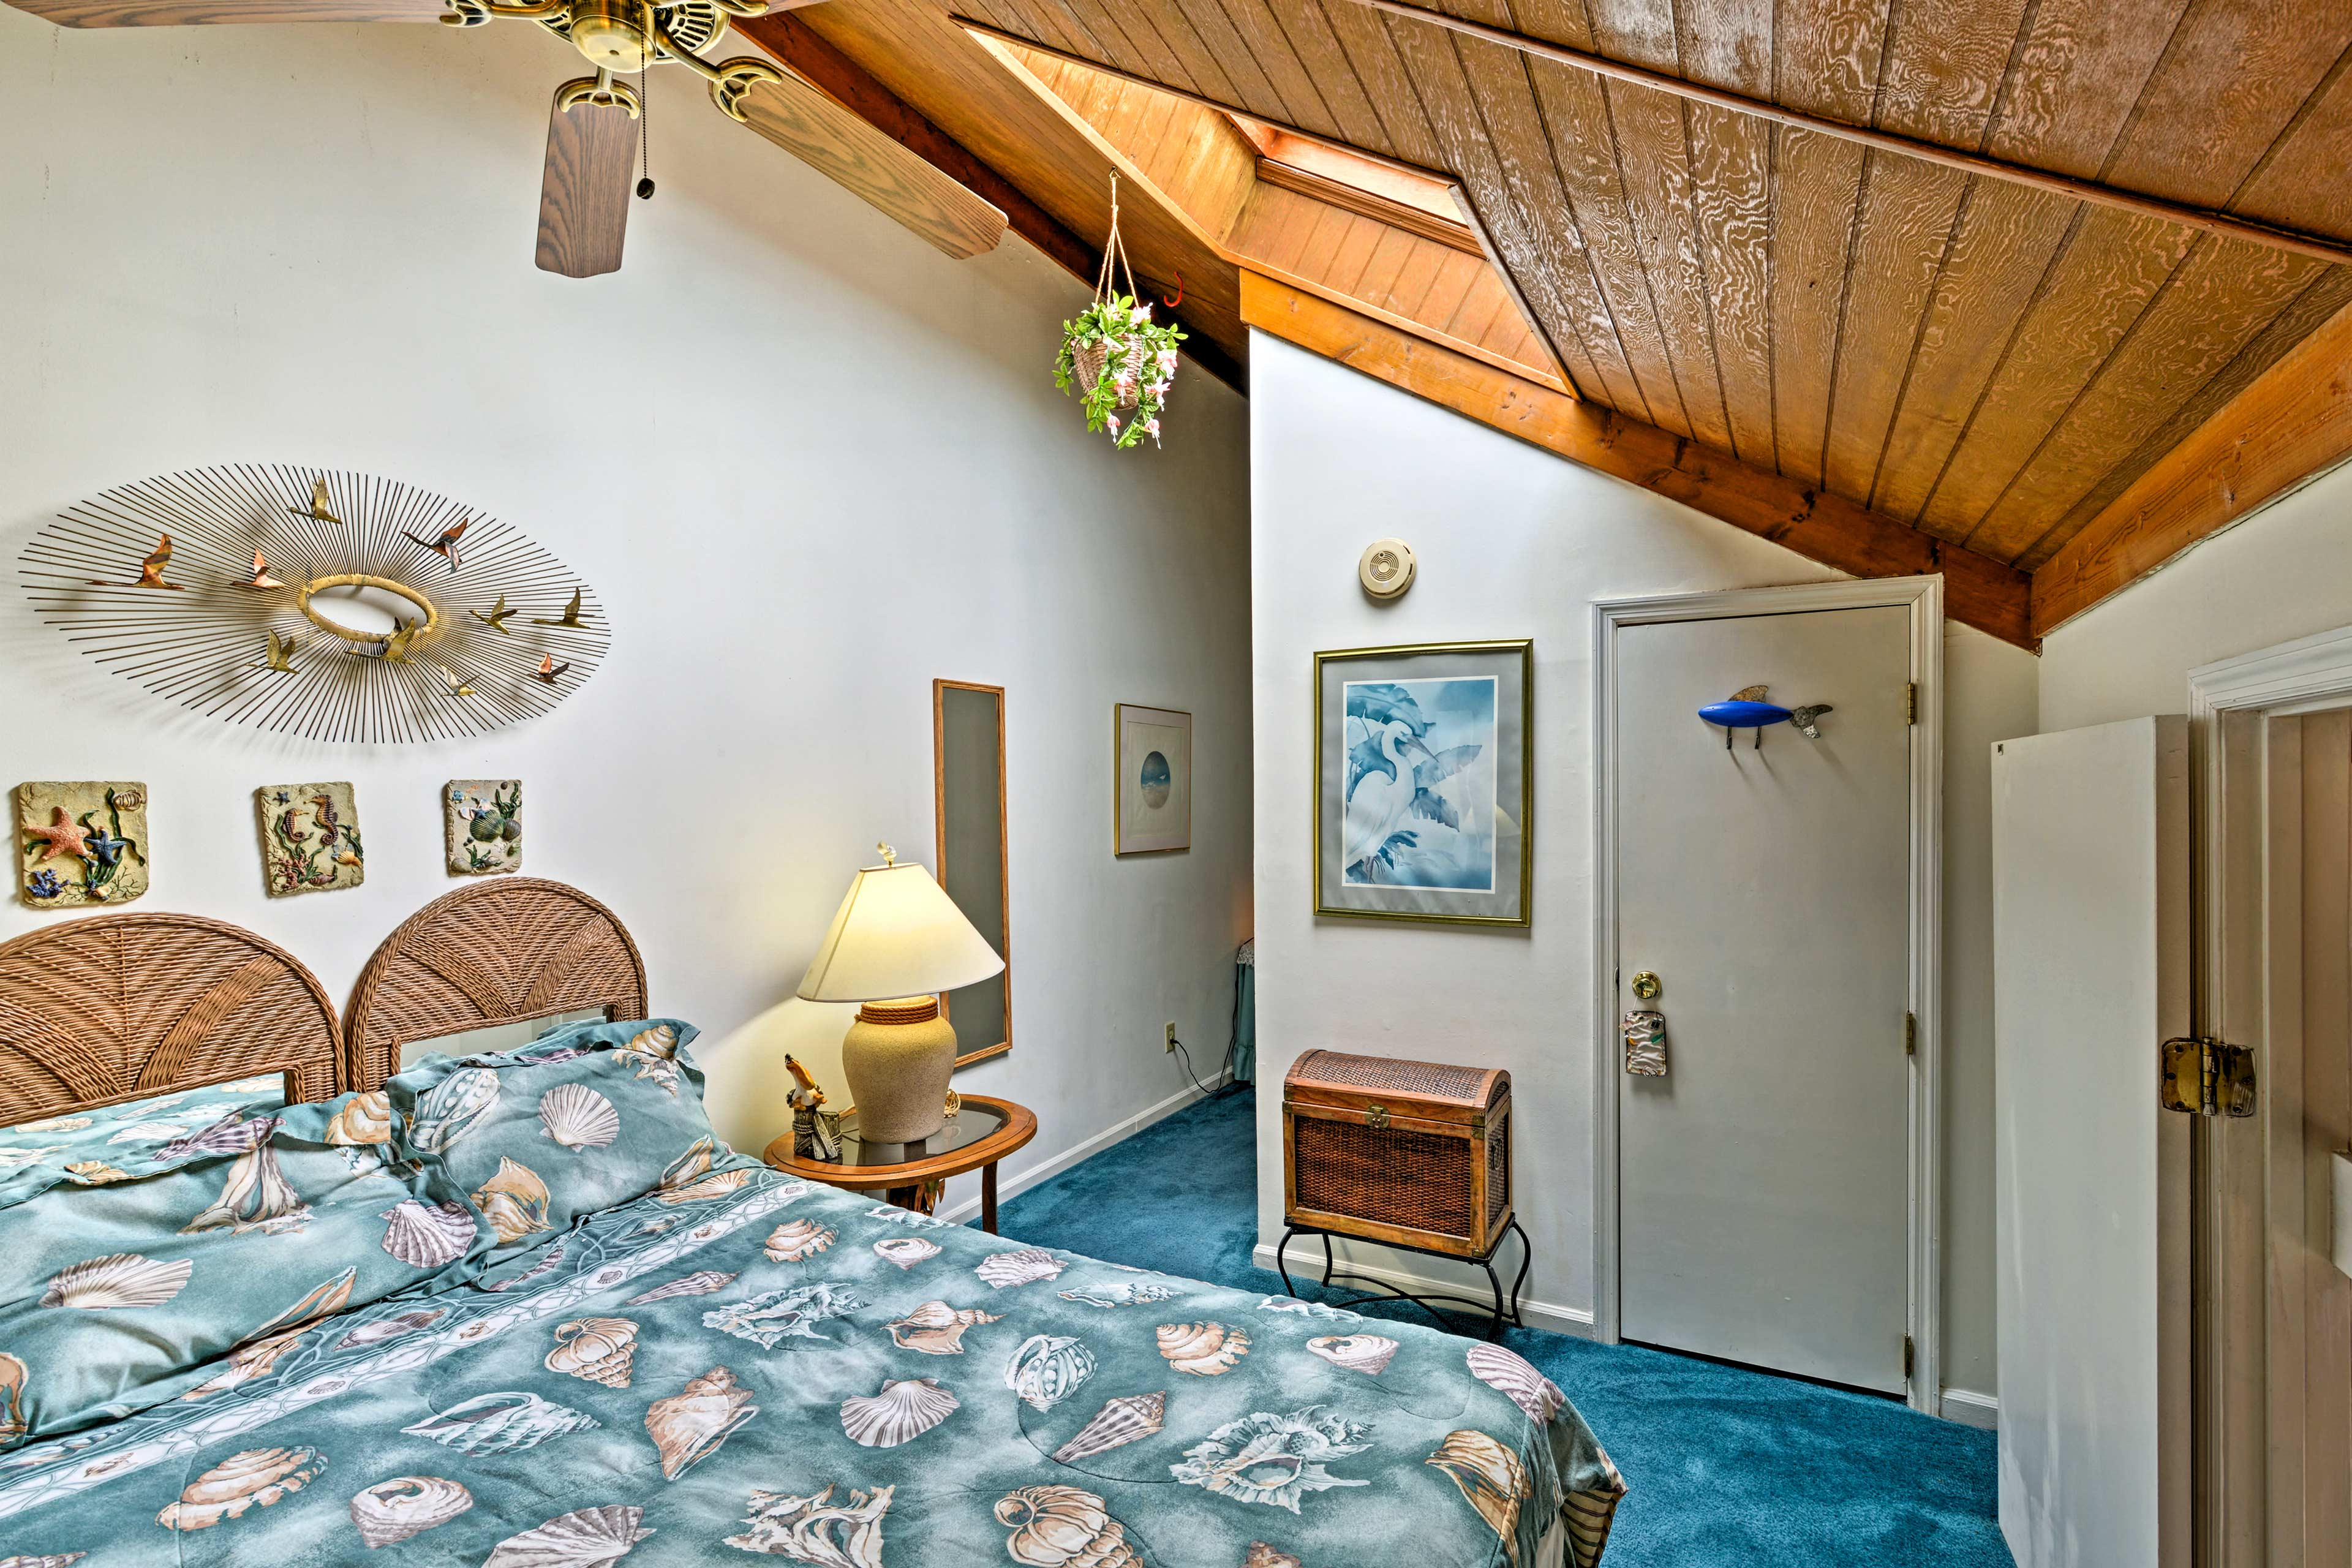 The second bedroom boasts a cozy full bed.